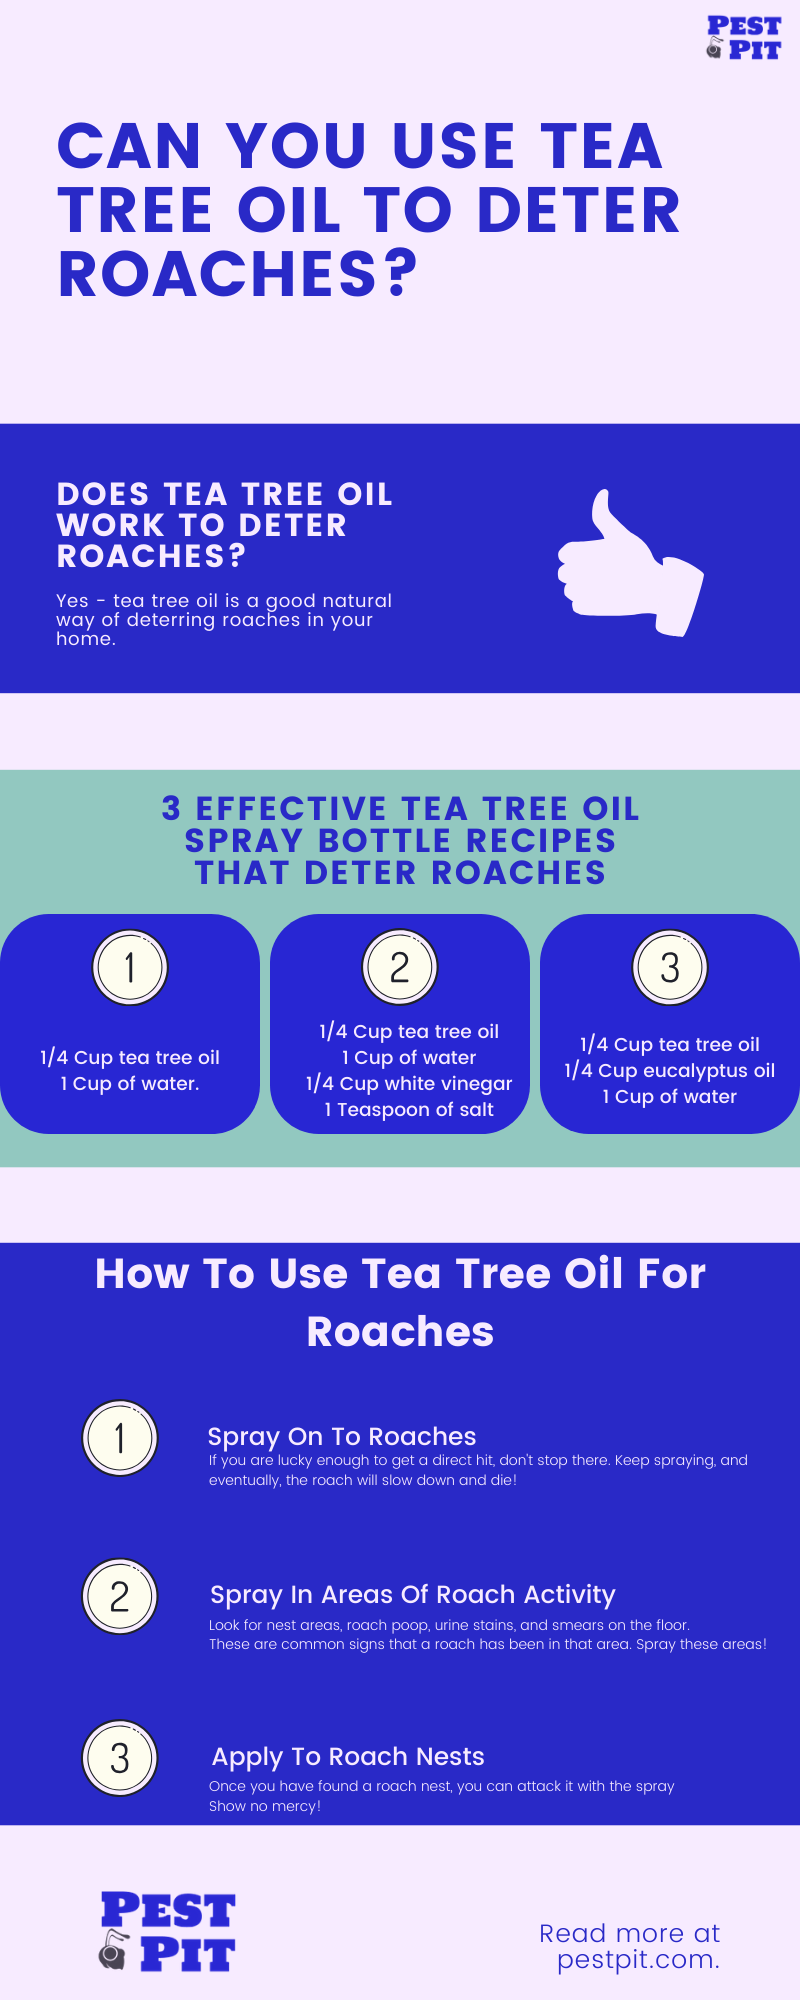 Can You Use Tea Tree Oil To Deter Roaches Infographic